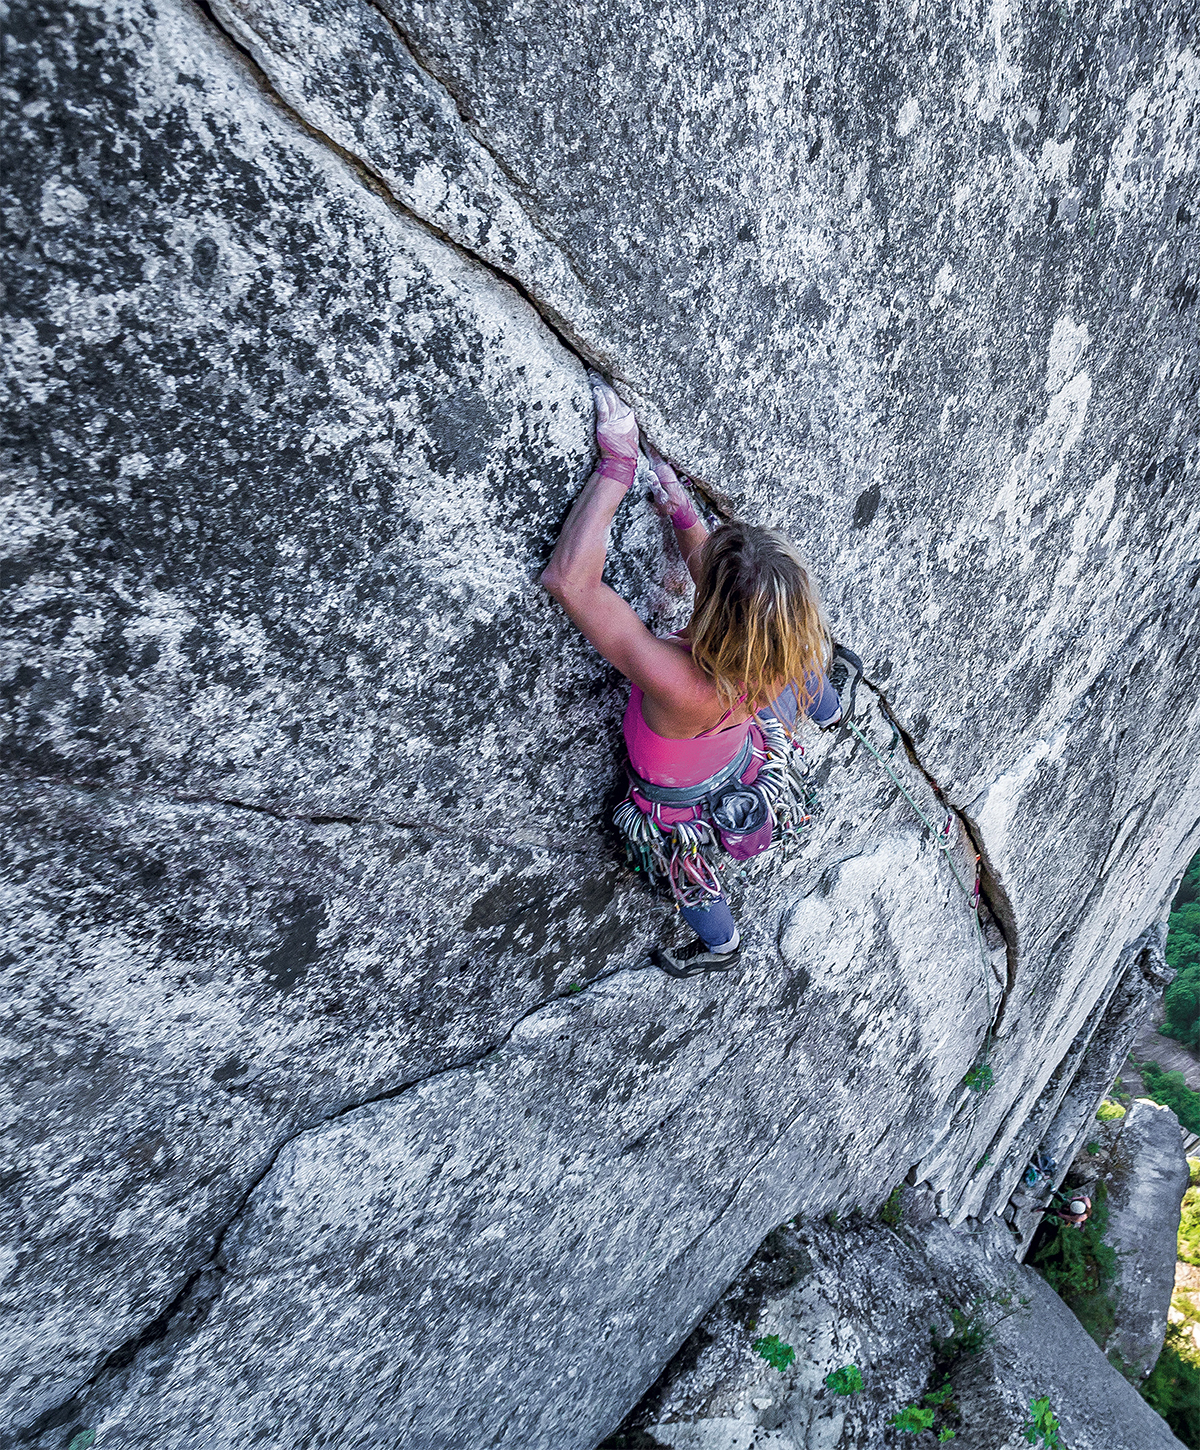 Anna Smith climbs High Plains Drifter (5.11c, 2 pitches) on the granitic Third Peak of the Stawamus Chief, Squamish, British Columbia. [Photo] John Price